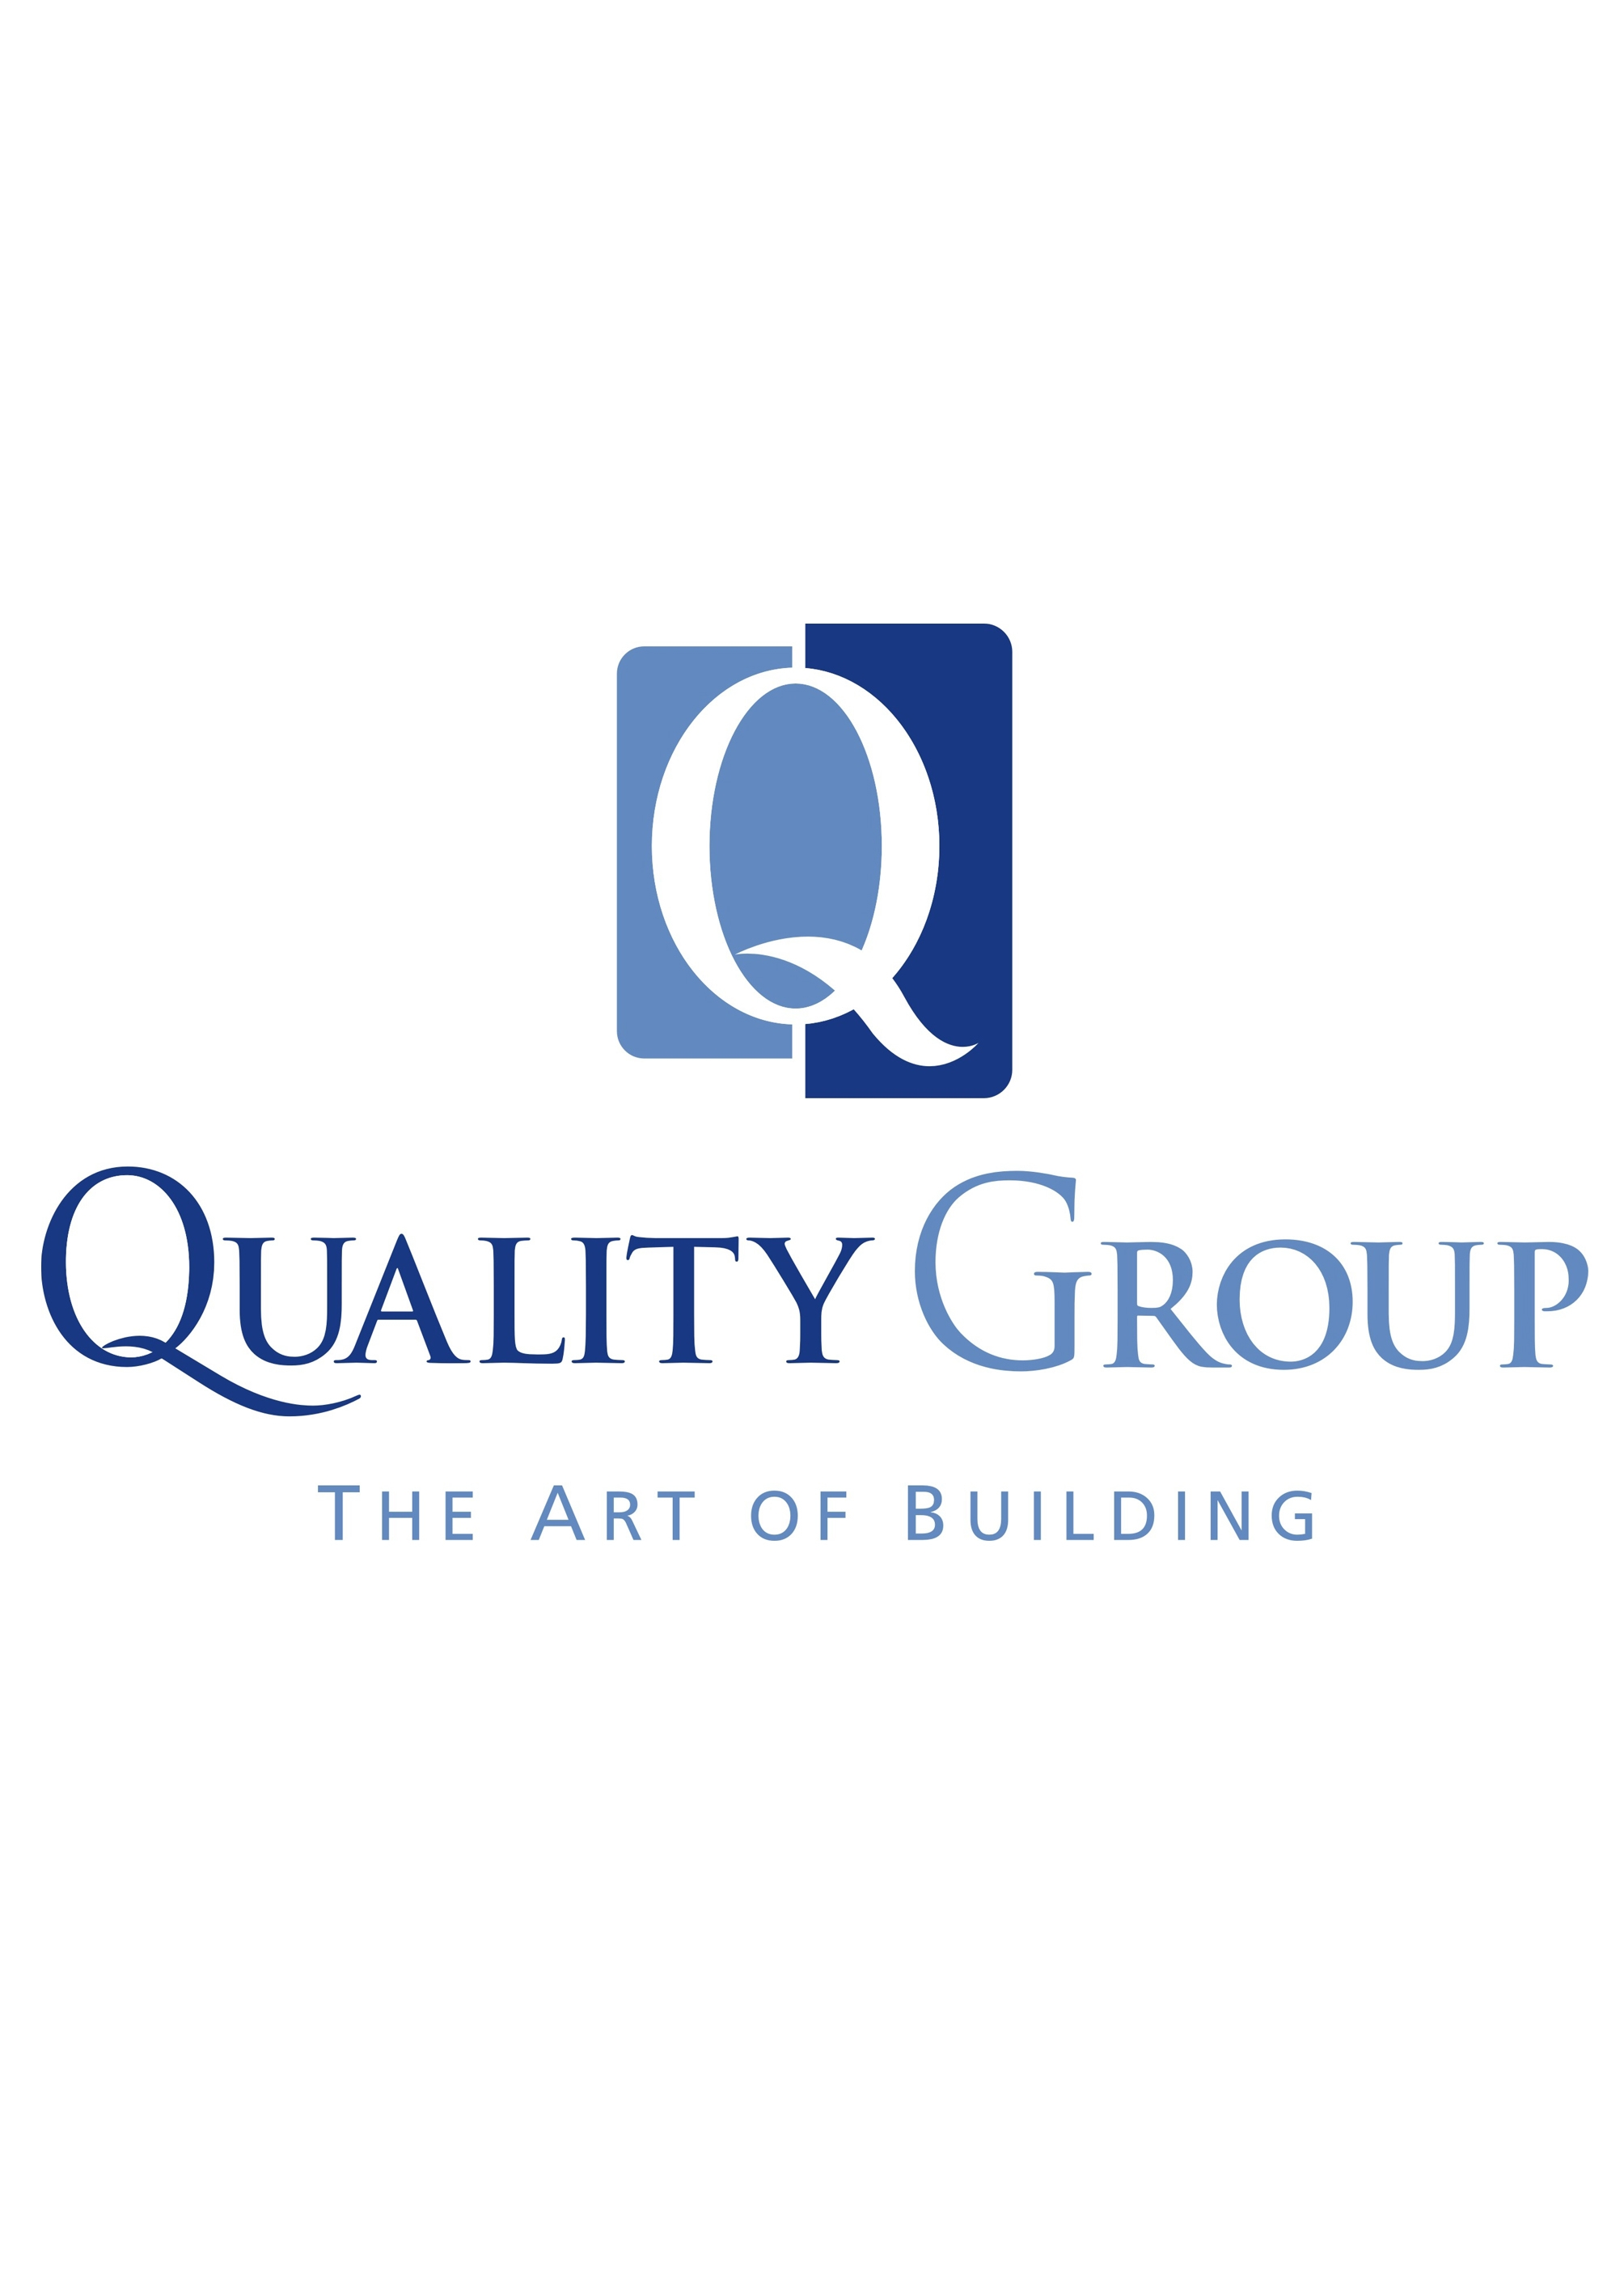 Q QUALITY GROUP THE ART OF BUILDING